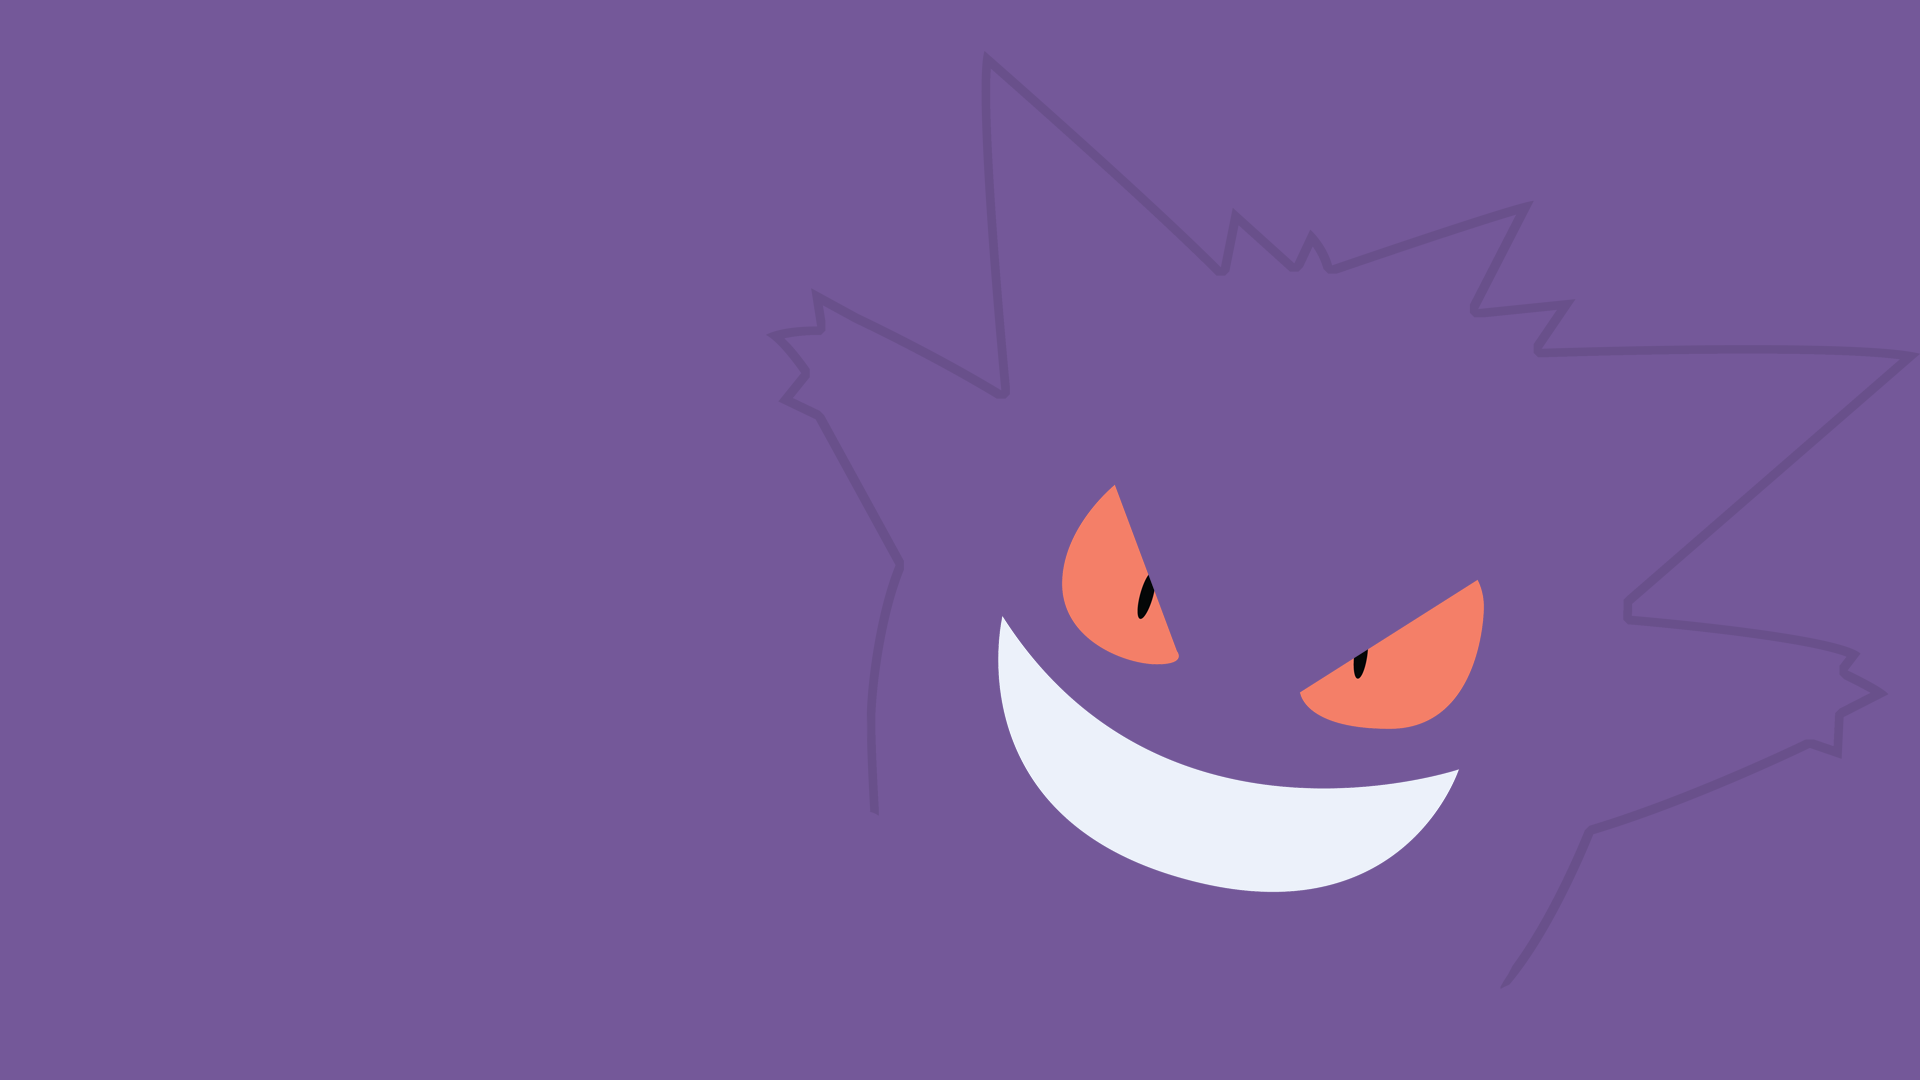 Gengar Wallpaper 1820X1080 by PyroPig75 1920x1080